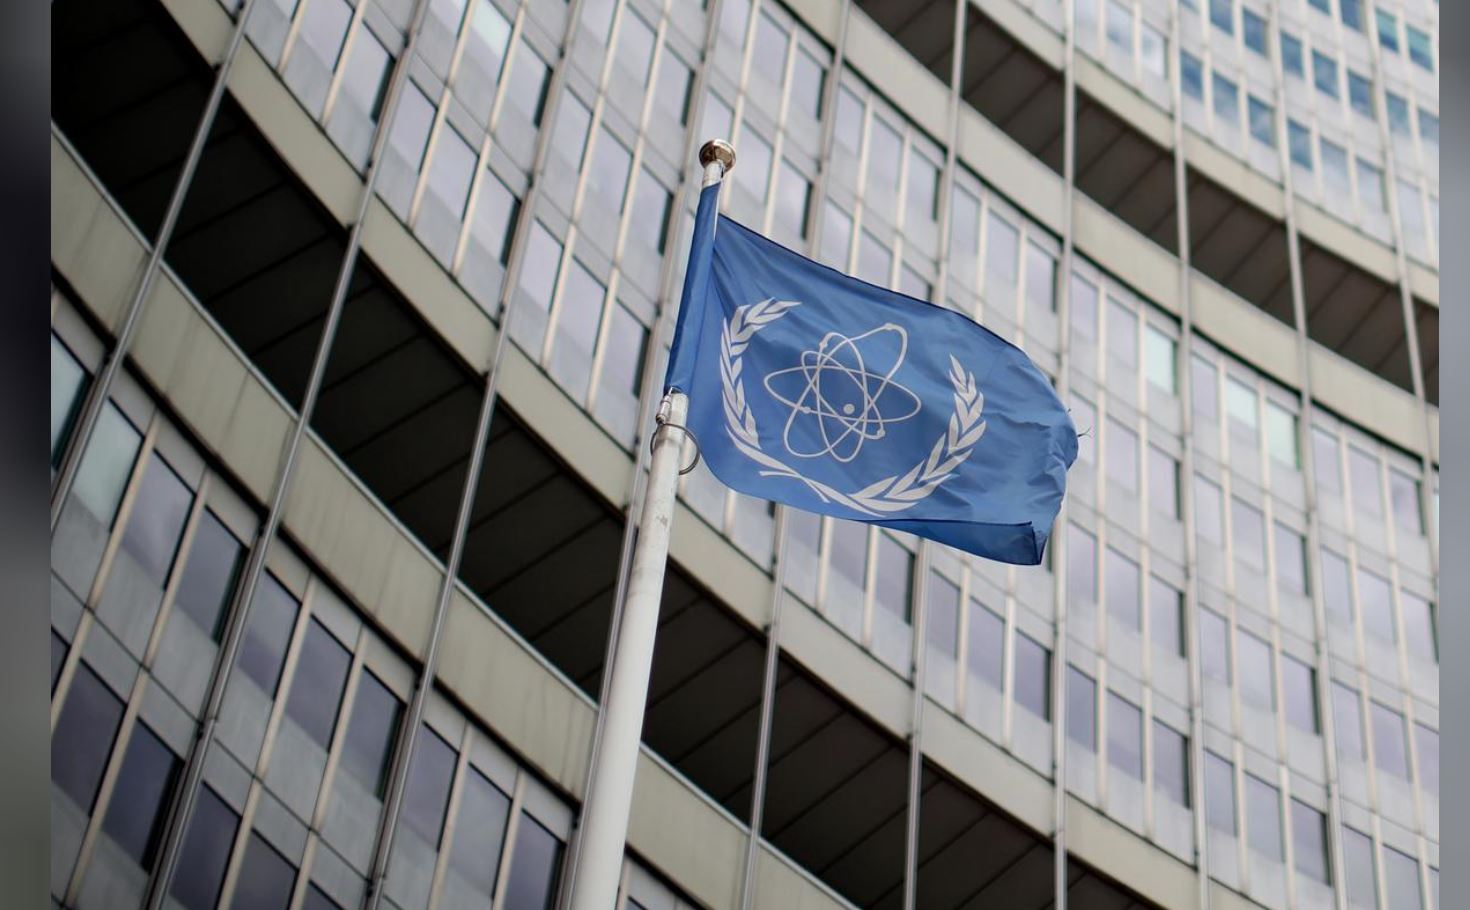 Iran still expanding enriched uranium stockpile, says United Nations watchdog